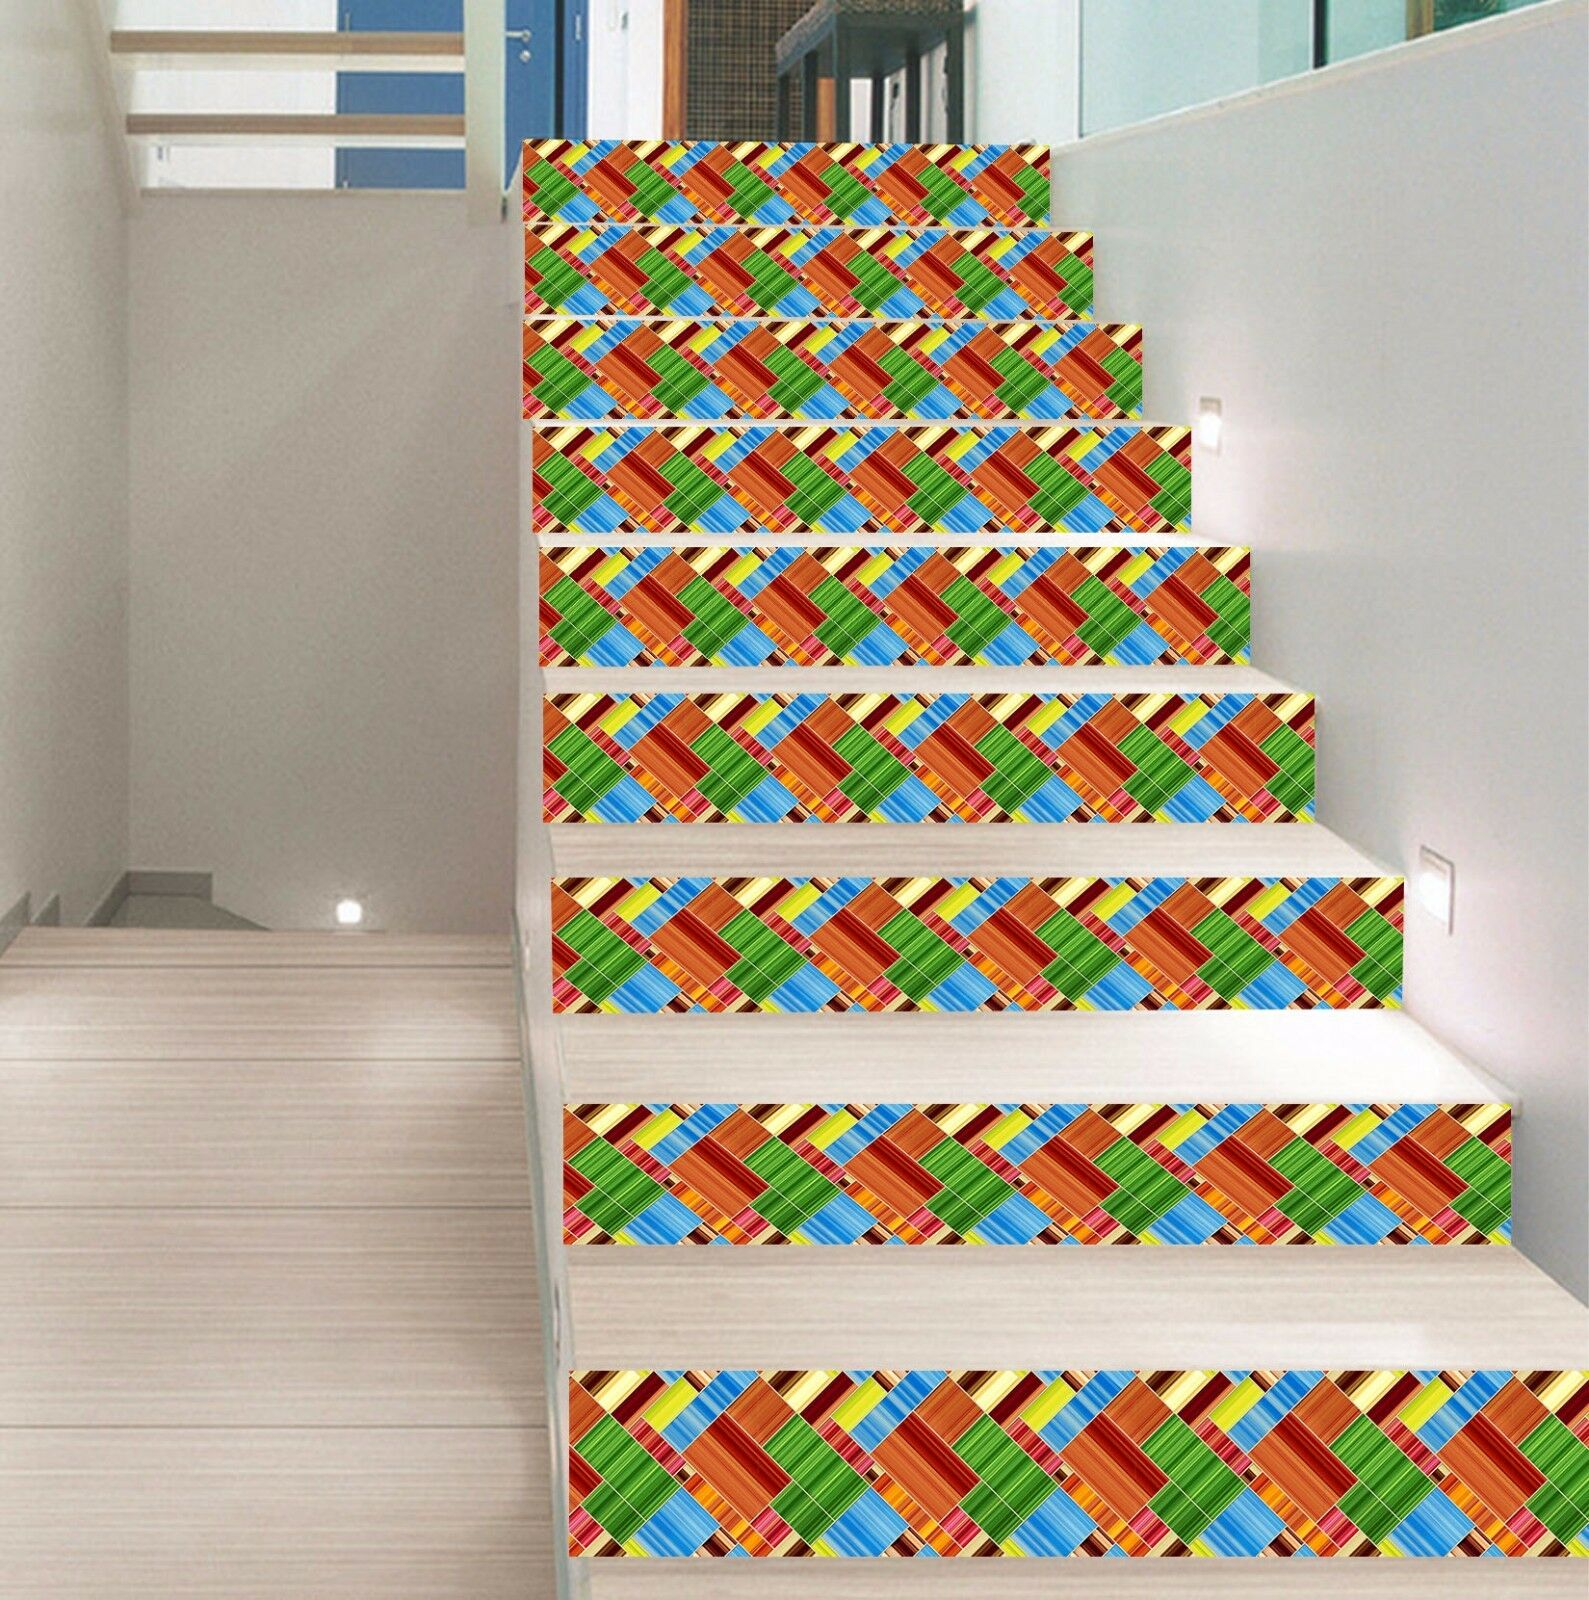 3D Grids Pattern 28 Stair Risers Decoration Photo Mural Vinyl Decal WandPapier AU